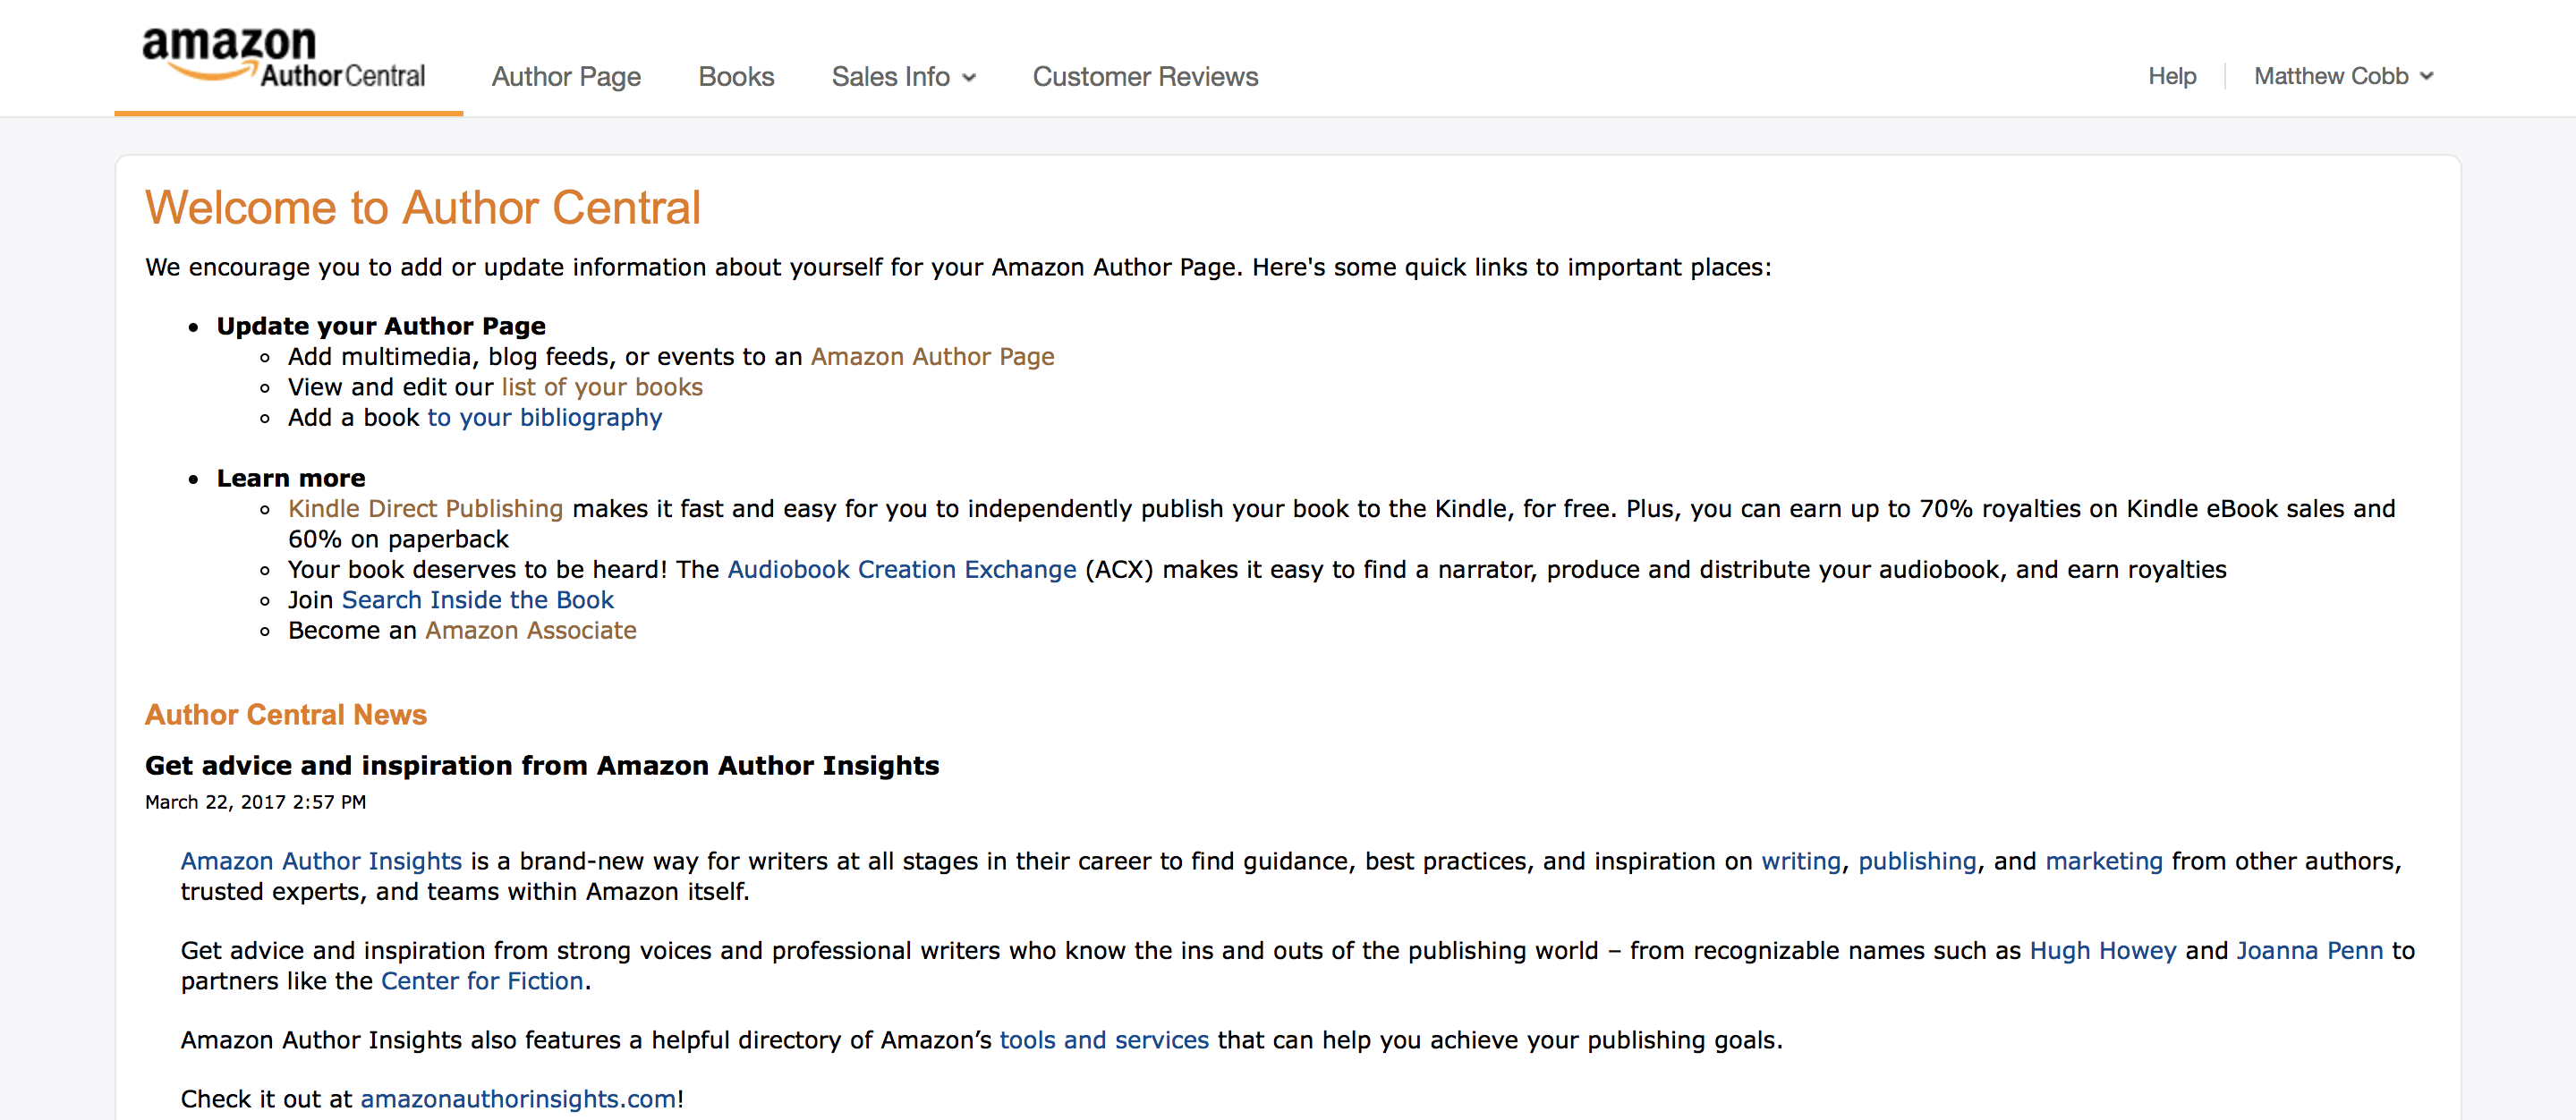 Amazon Author Central | Author Central Dashboard